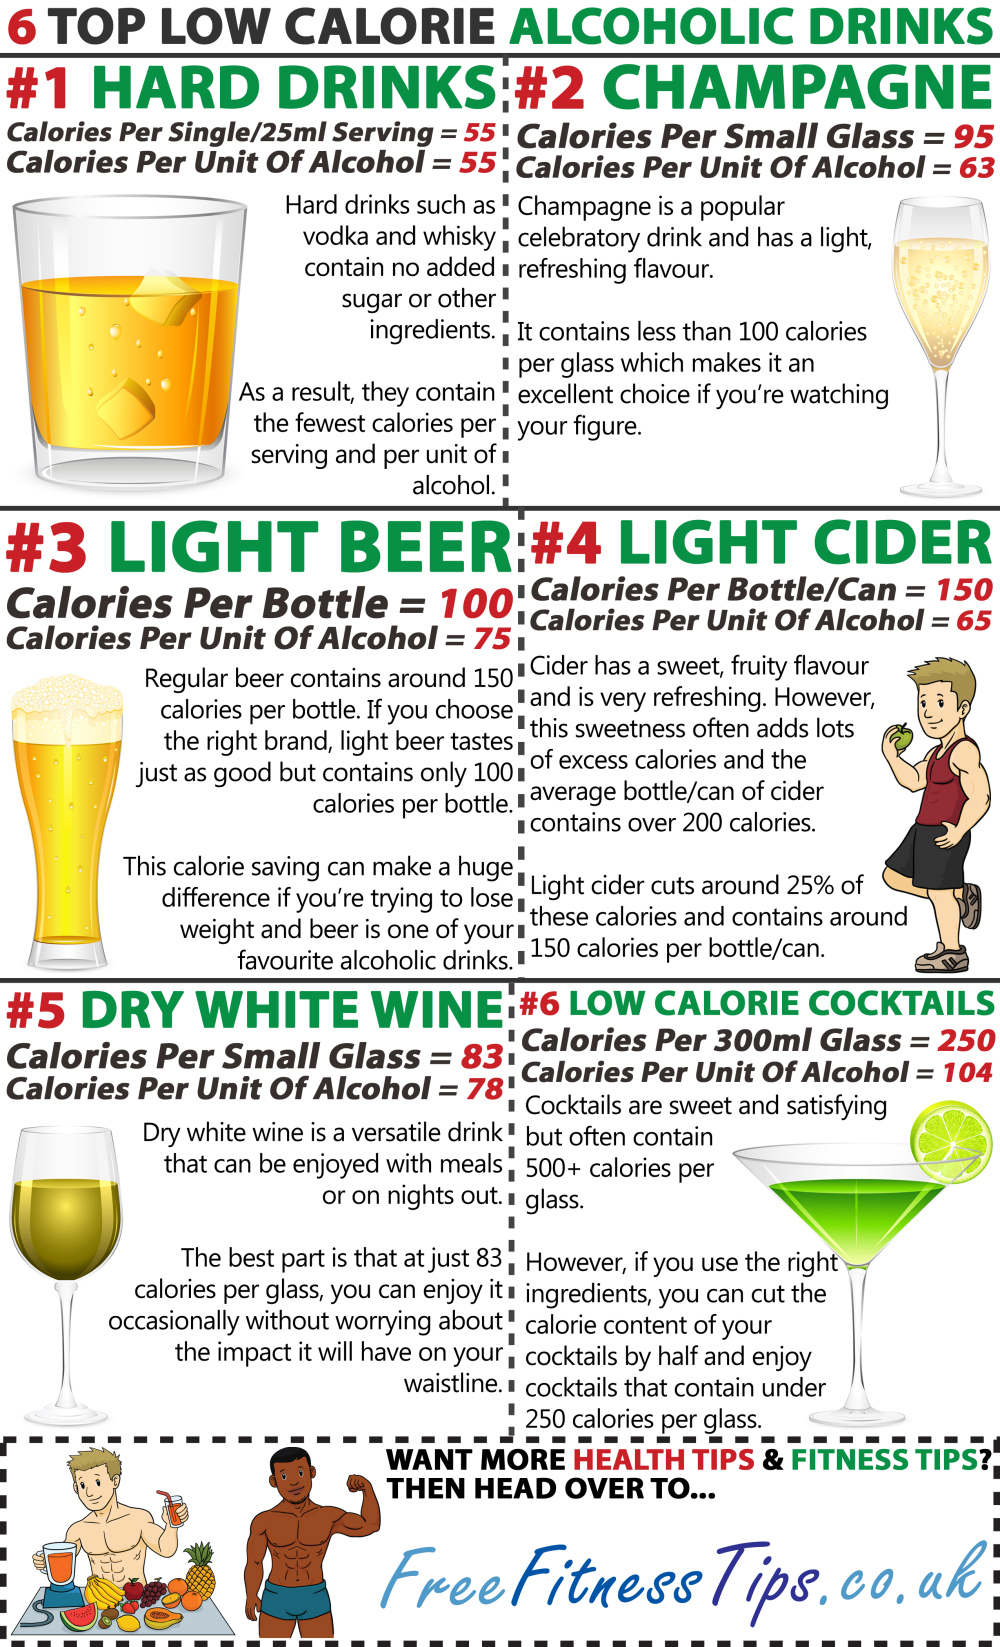 6 Alcoholic Drinks That Are Low On Calories - Infographic